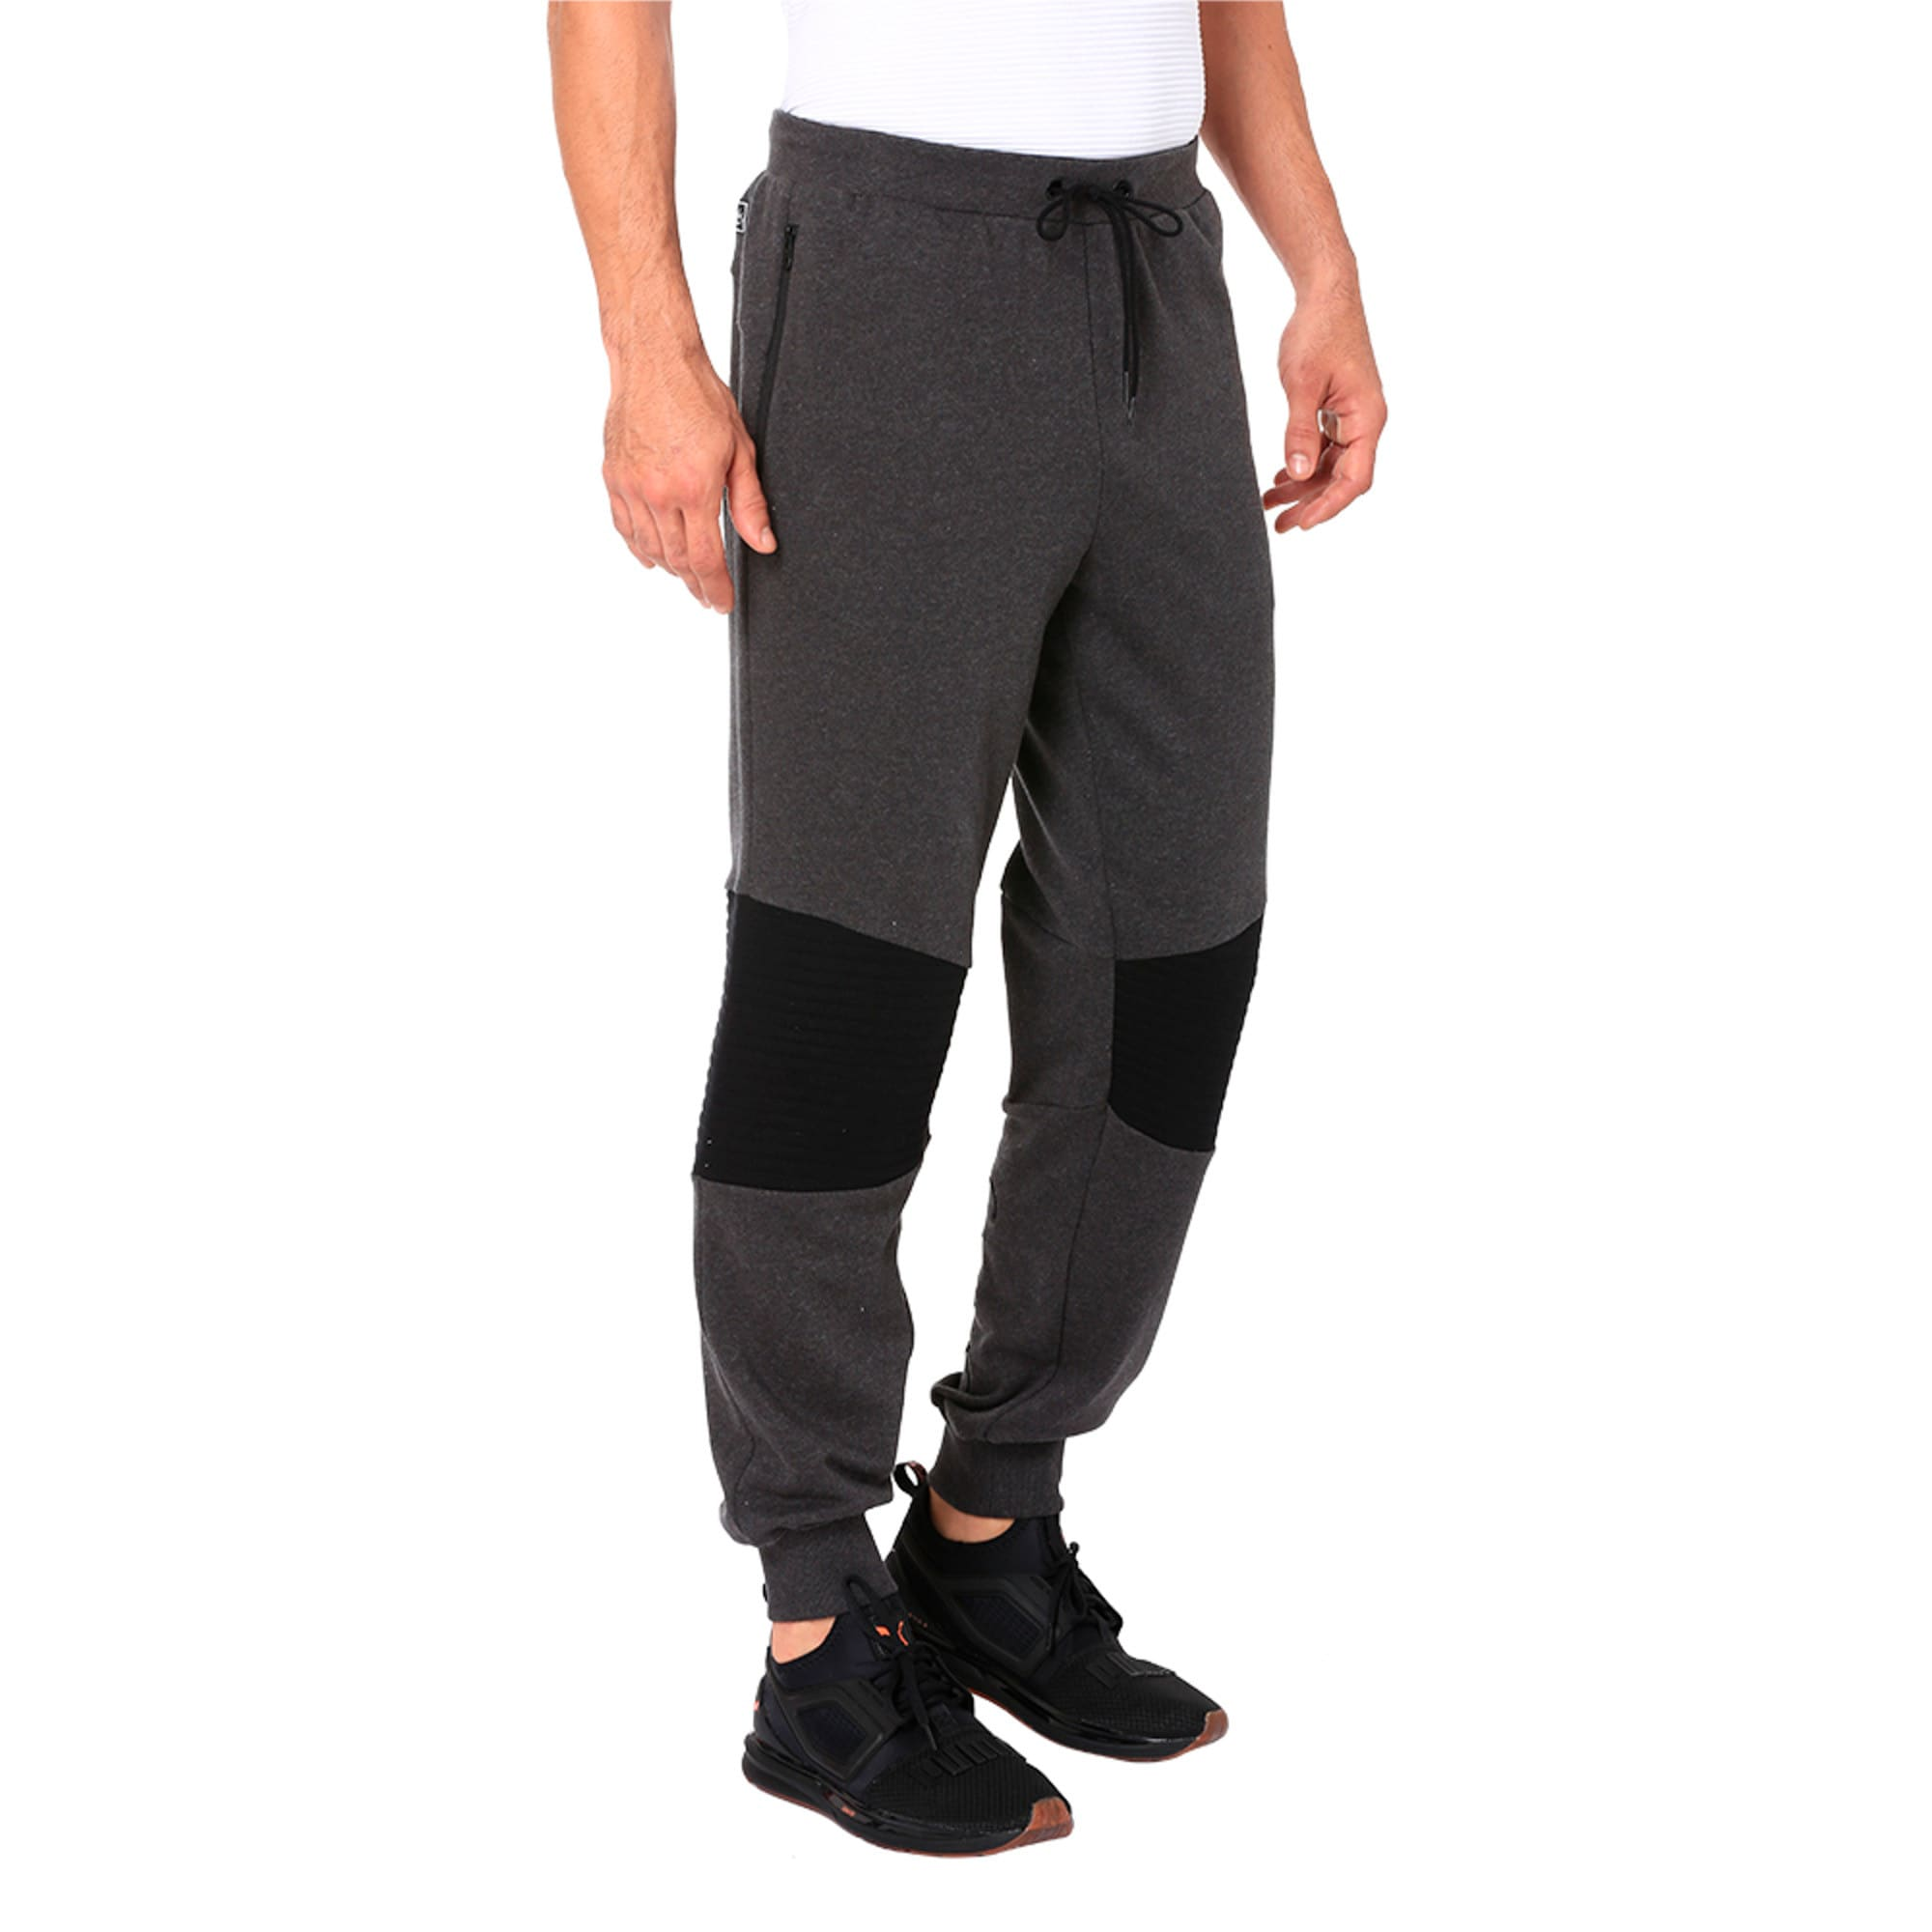 Thumbnail 5 of One8 VK Men's Sweat Pants, Dark Gray Heather, medium-IND